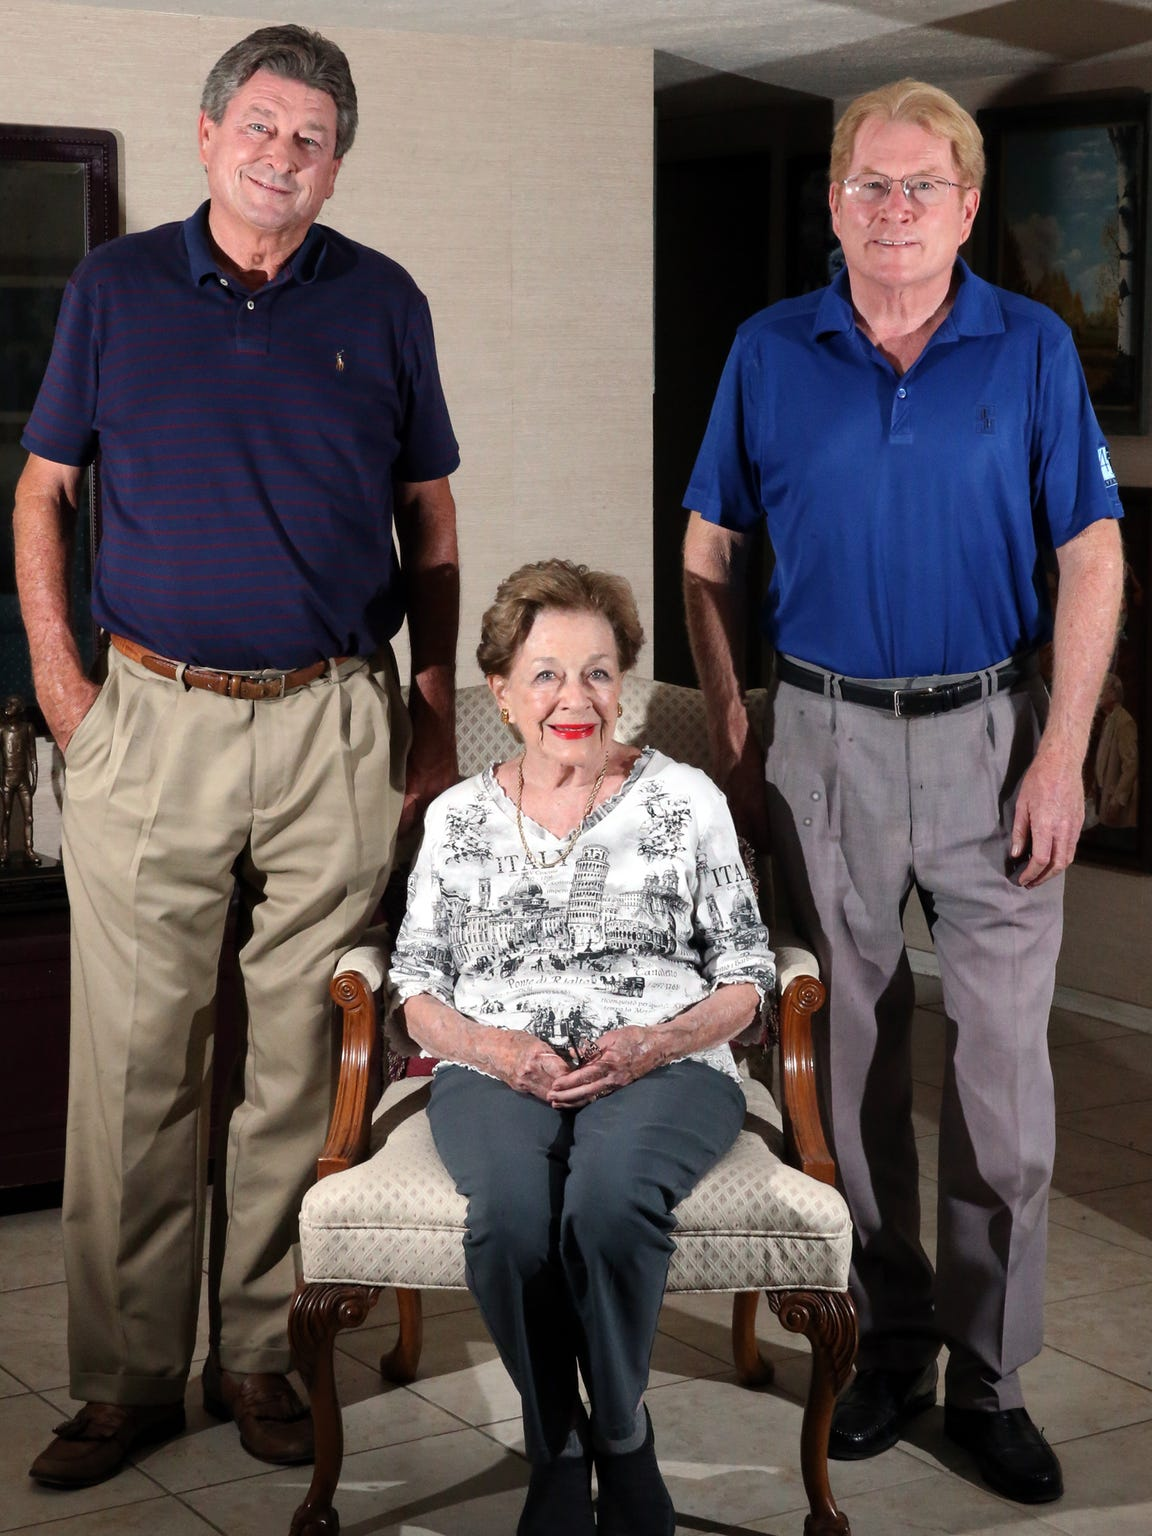 Mary Haskins, widow of longtime Texas Western College and UTEP head basketball coach Don Haskins with sons Steve and Brent Haskins in her West El Paso home. Sept. 7 marks ten years since the passing of 'The Bear.'